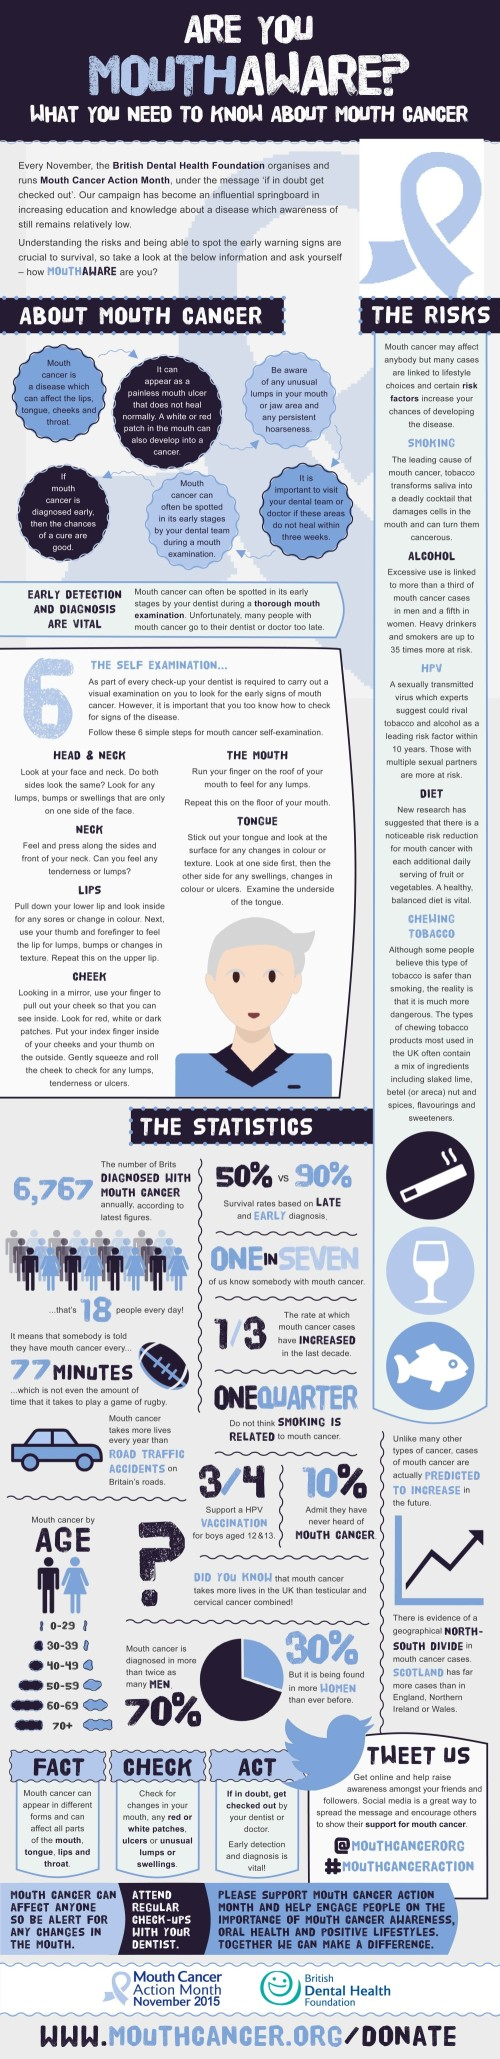 Mouth Cancer Action Month Infographic